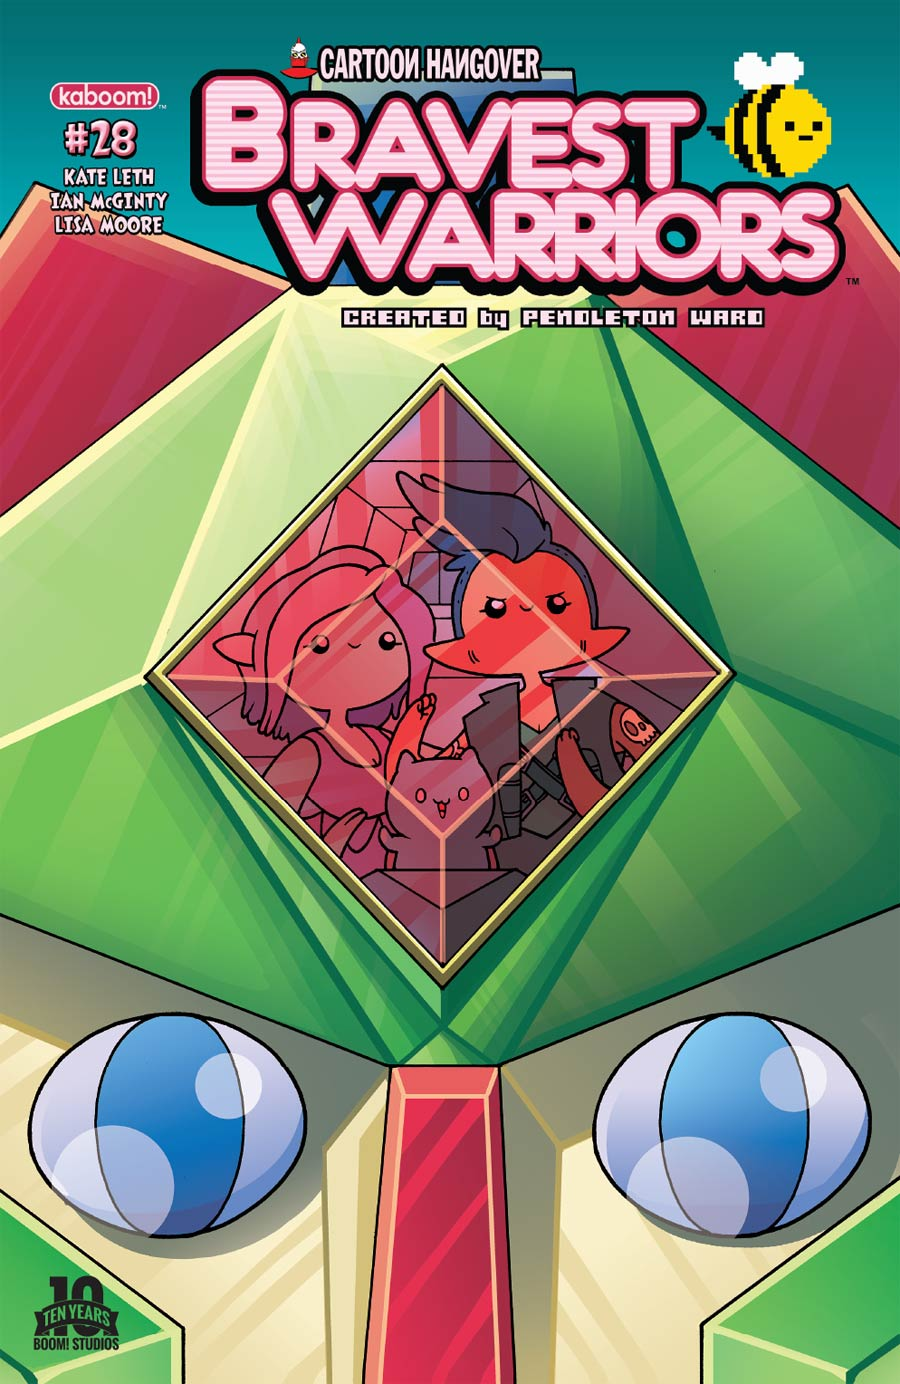 Bravest Warriors #28 Cover A Regular Ian McGinty Cover